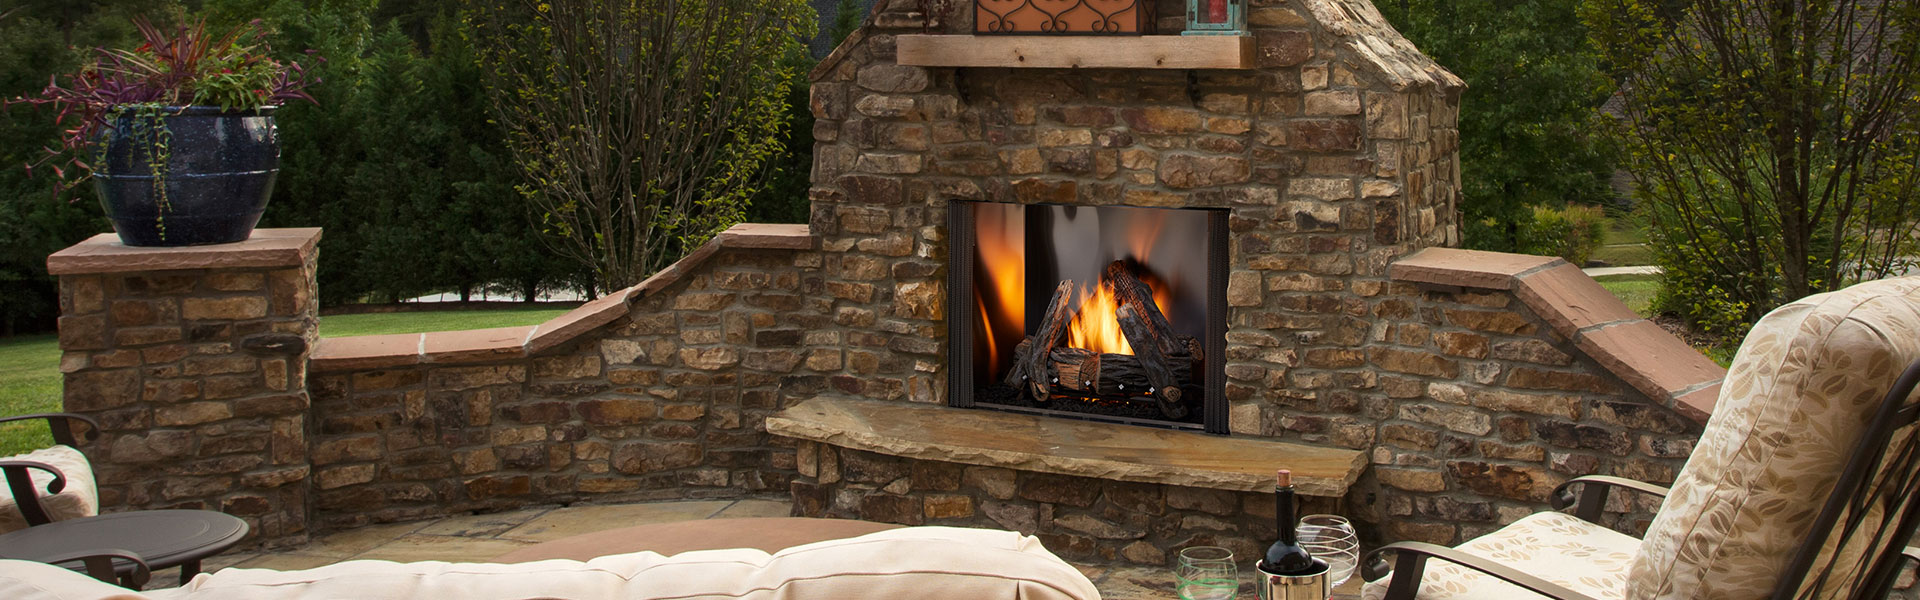 Outdoor Gas Fireplaces Heat Glo Courtyard Outdoor Gas Fireplace Energy House